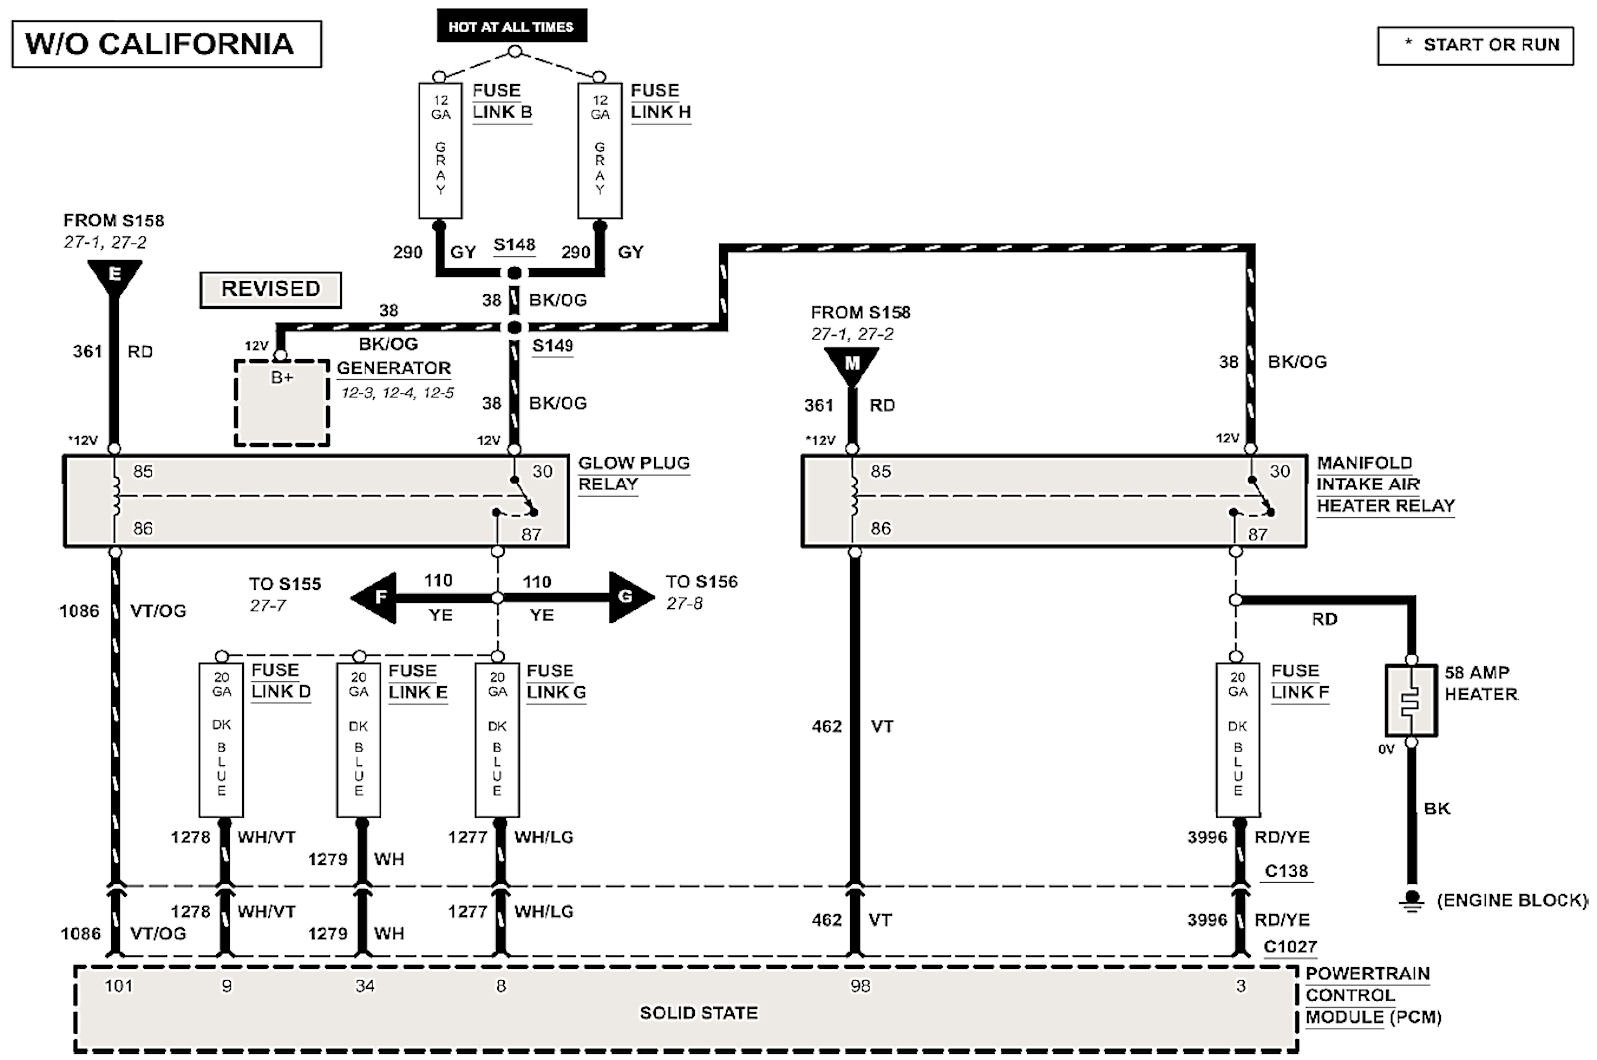 Wiring Diagram For 2000 Ford F250 | Wiring Diagram on 6.0 powerstroke belt routing diagram, ford 7.3 parts diagram, 97 7.3 fuel system diagram, 1997 f250 wiring diagram, 6.6 duramax wiring diagram, 6.0 powerstroke glow plug diagram, cummins ecm wiring diagram, ford 3g alternator wiring diagram, headlight plug wiring diagram, auto wiring diagram, 7.3l glow plug wiring diagram, 7.3 injector diagram, f350 trailer wiring diagram, 6.7 cummins wiring diagram, ford 7 pin wiring diagram, engine wiring diagram, jeep 4.0 wiring diagram, 6.7 powerstroke diagram, 6.0 powerstroke injector diagram, 4.6 serpentine belt diagram,